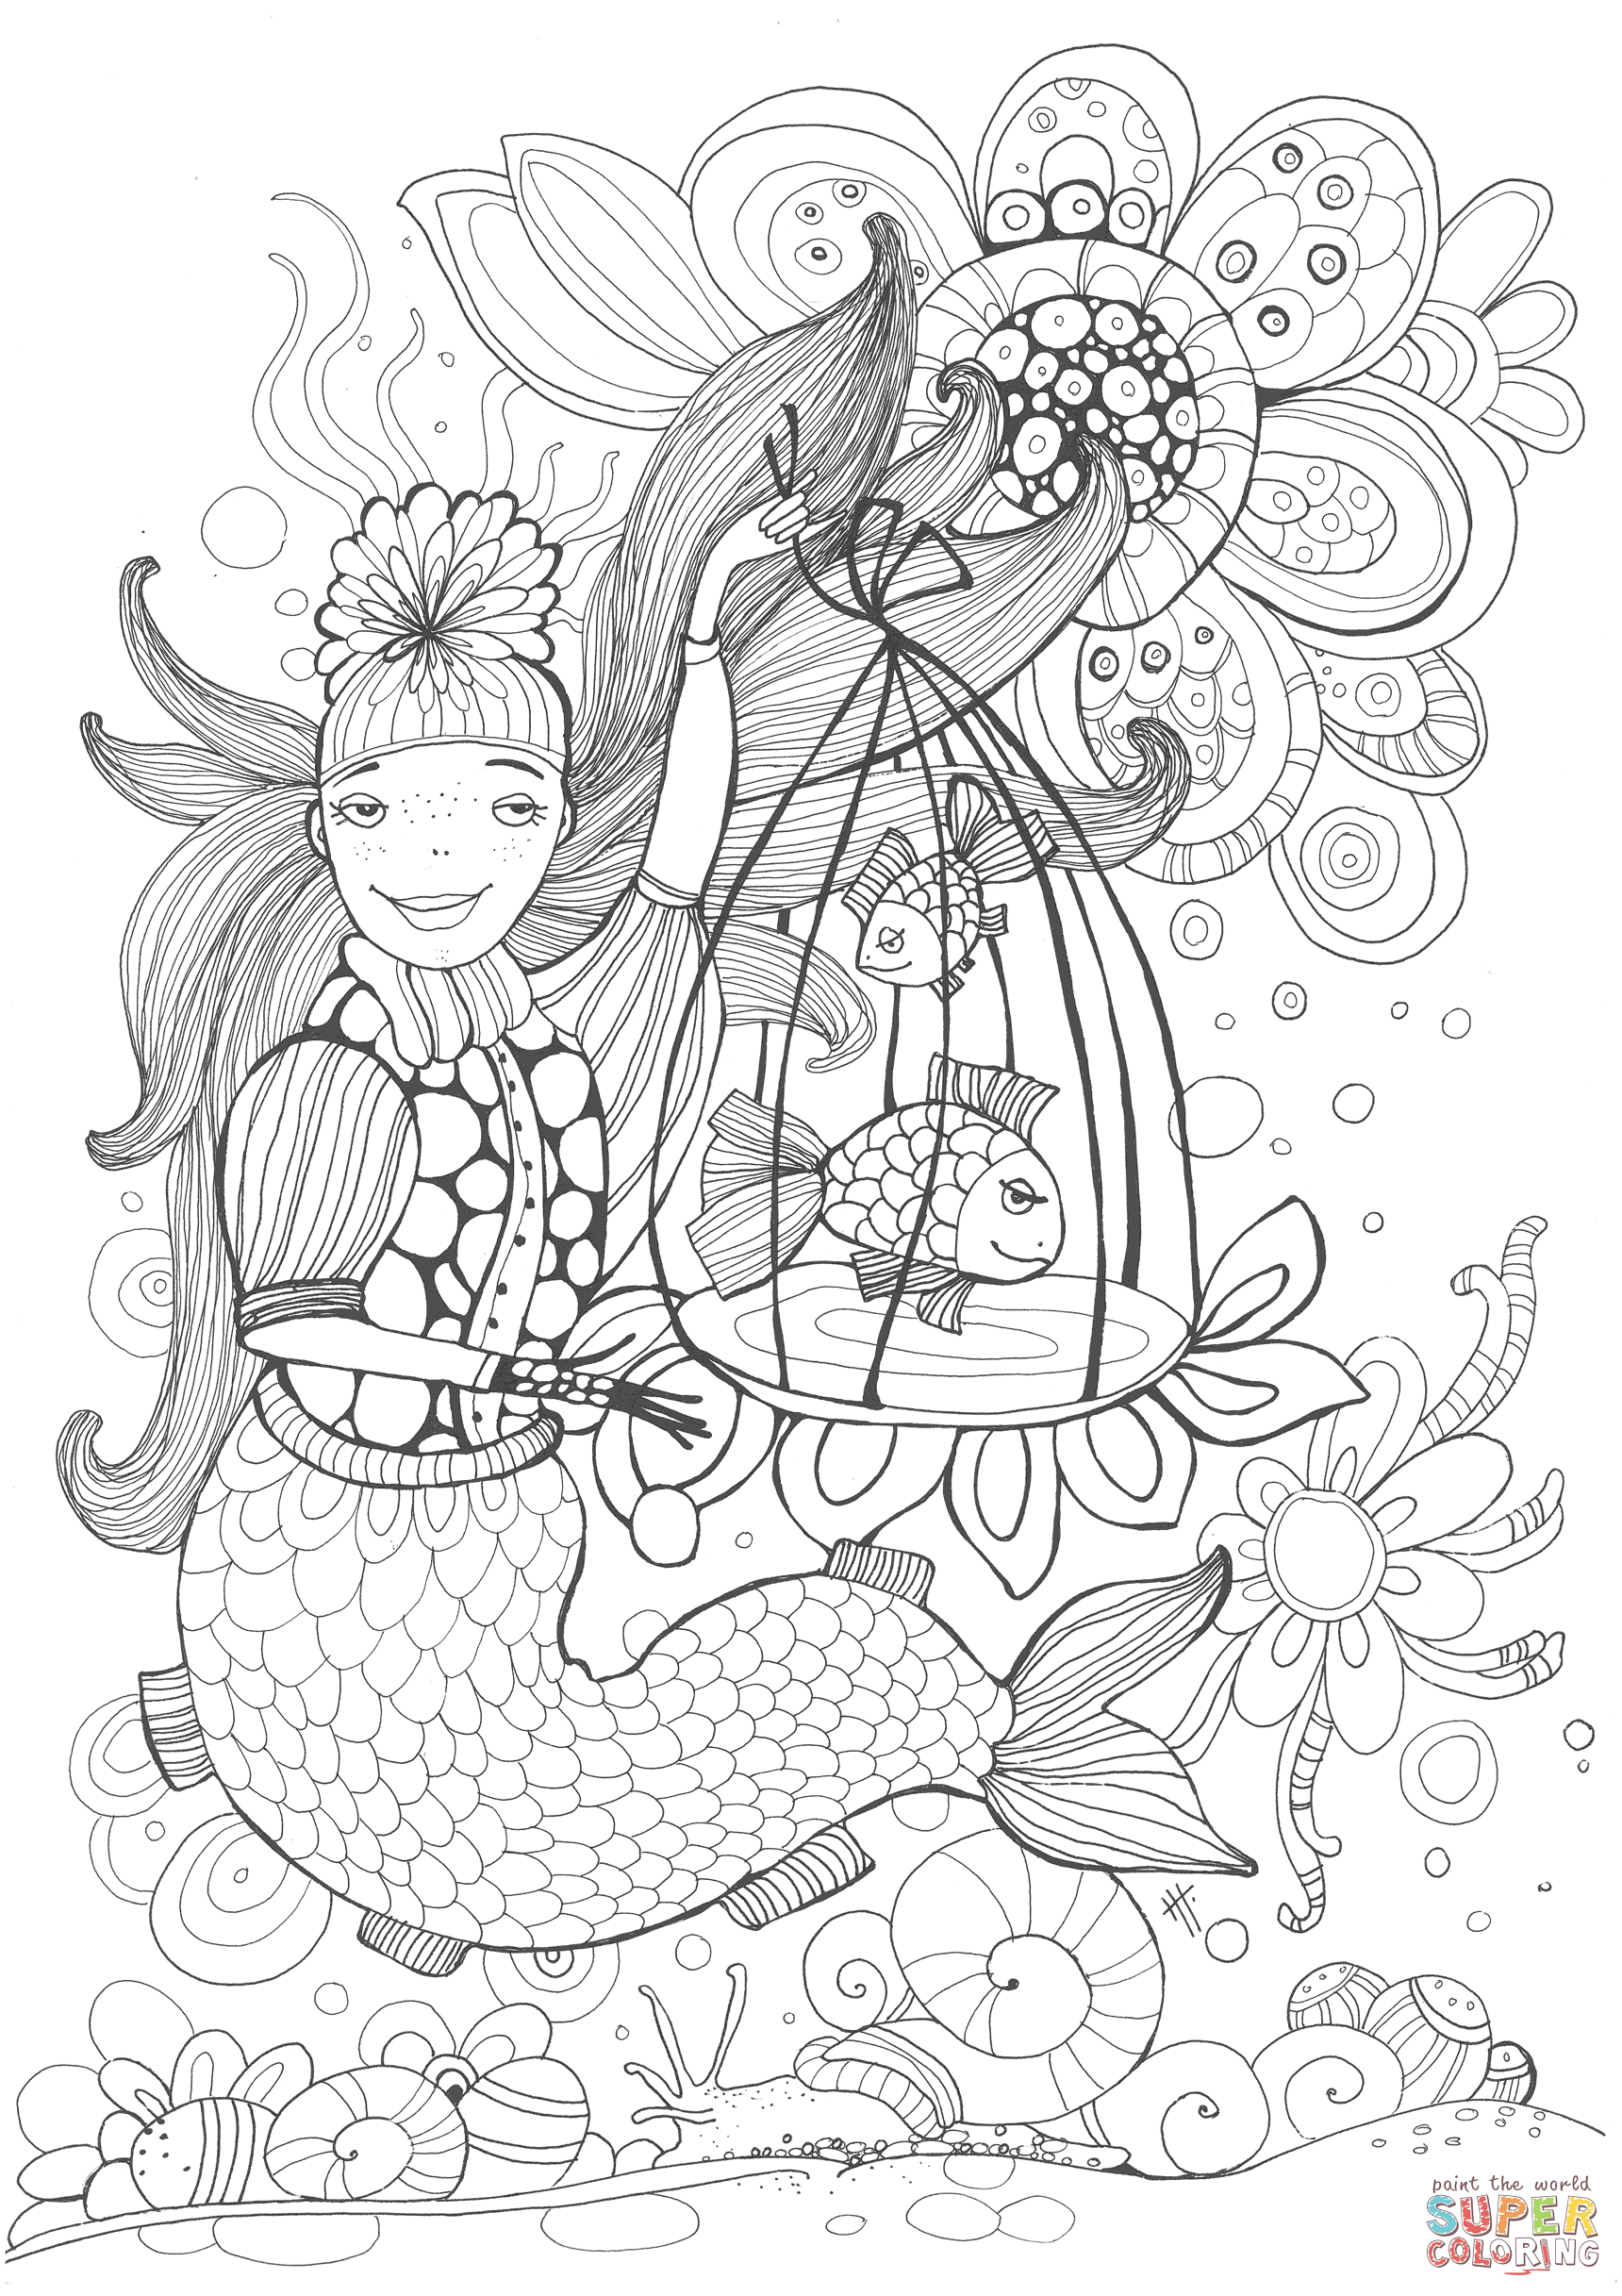 Mermaid Holding A Cell With A Speaking Fish Coloring Book